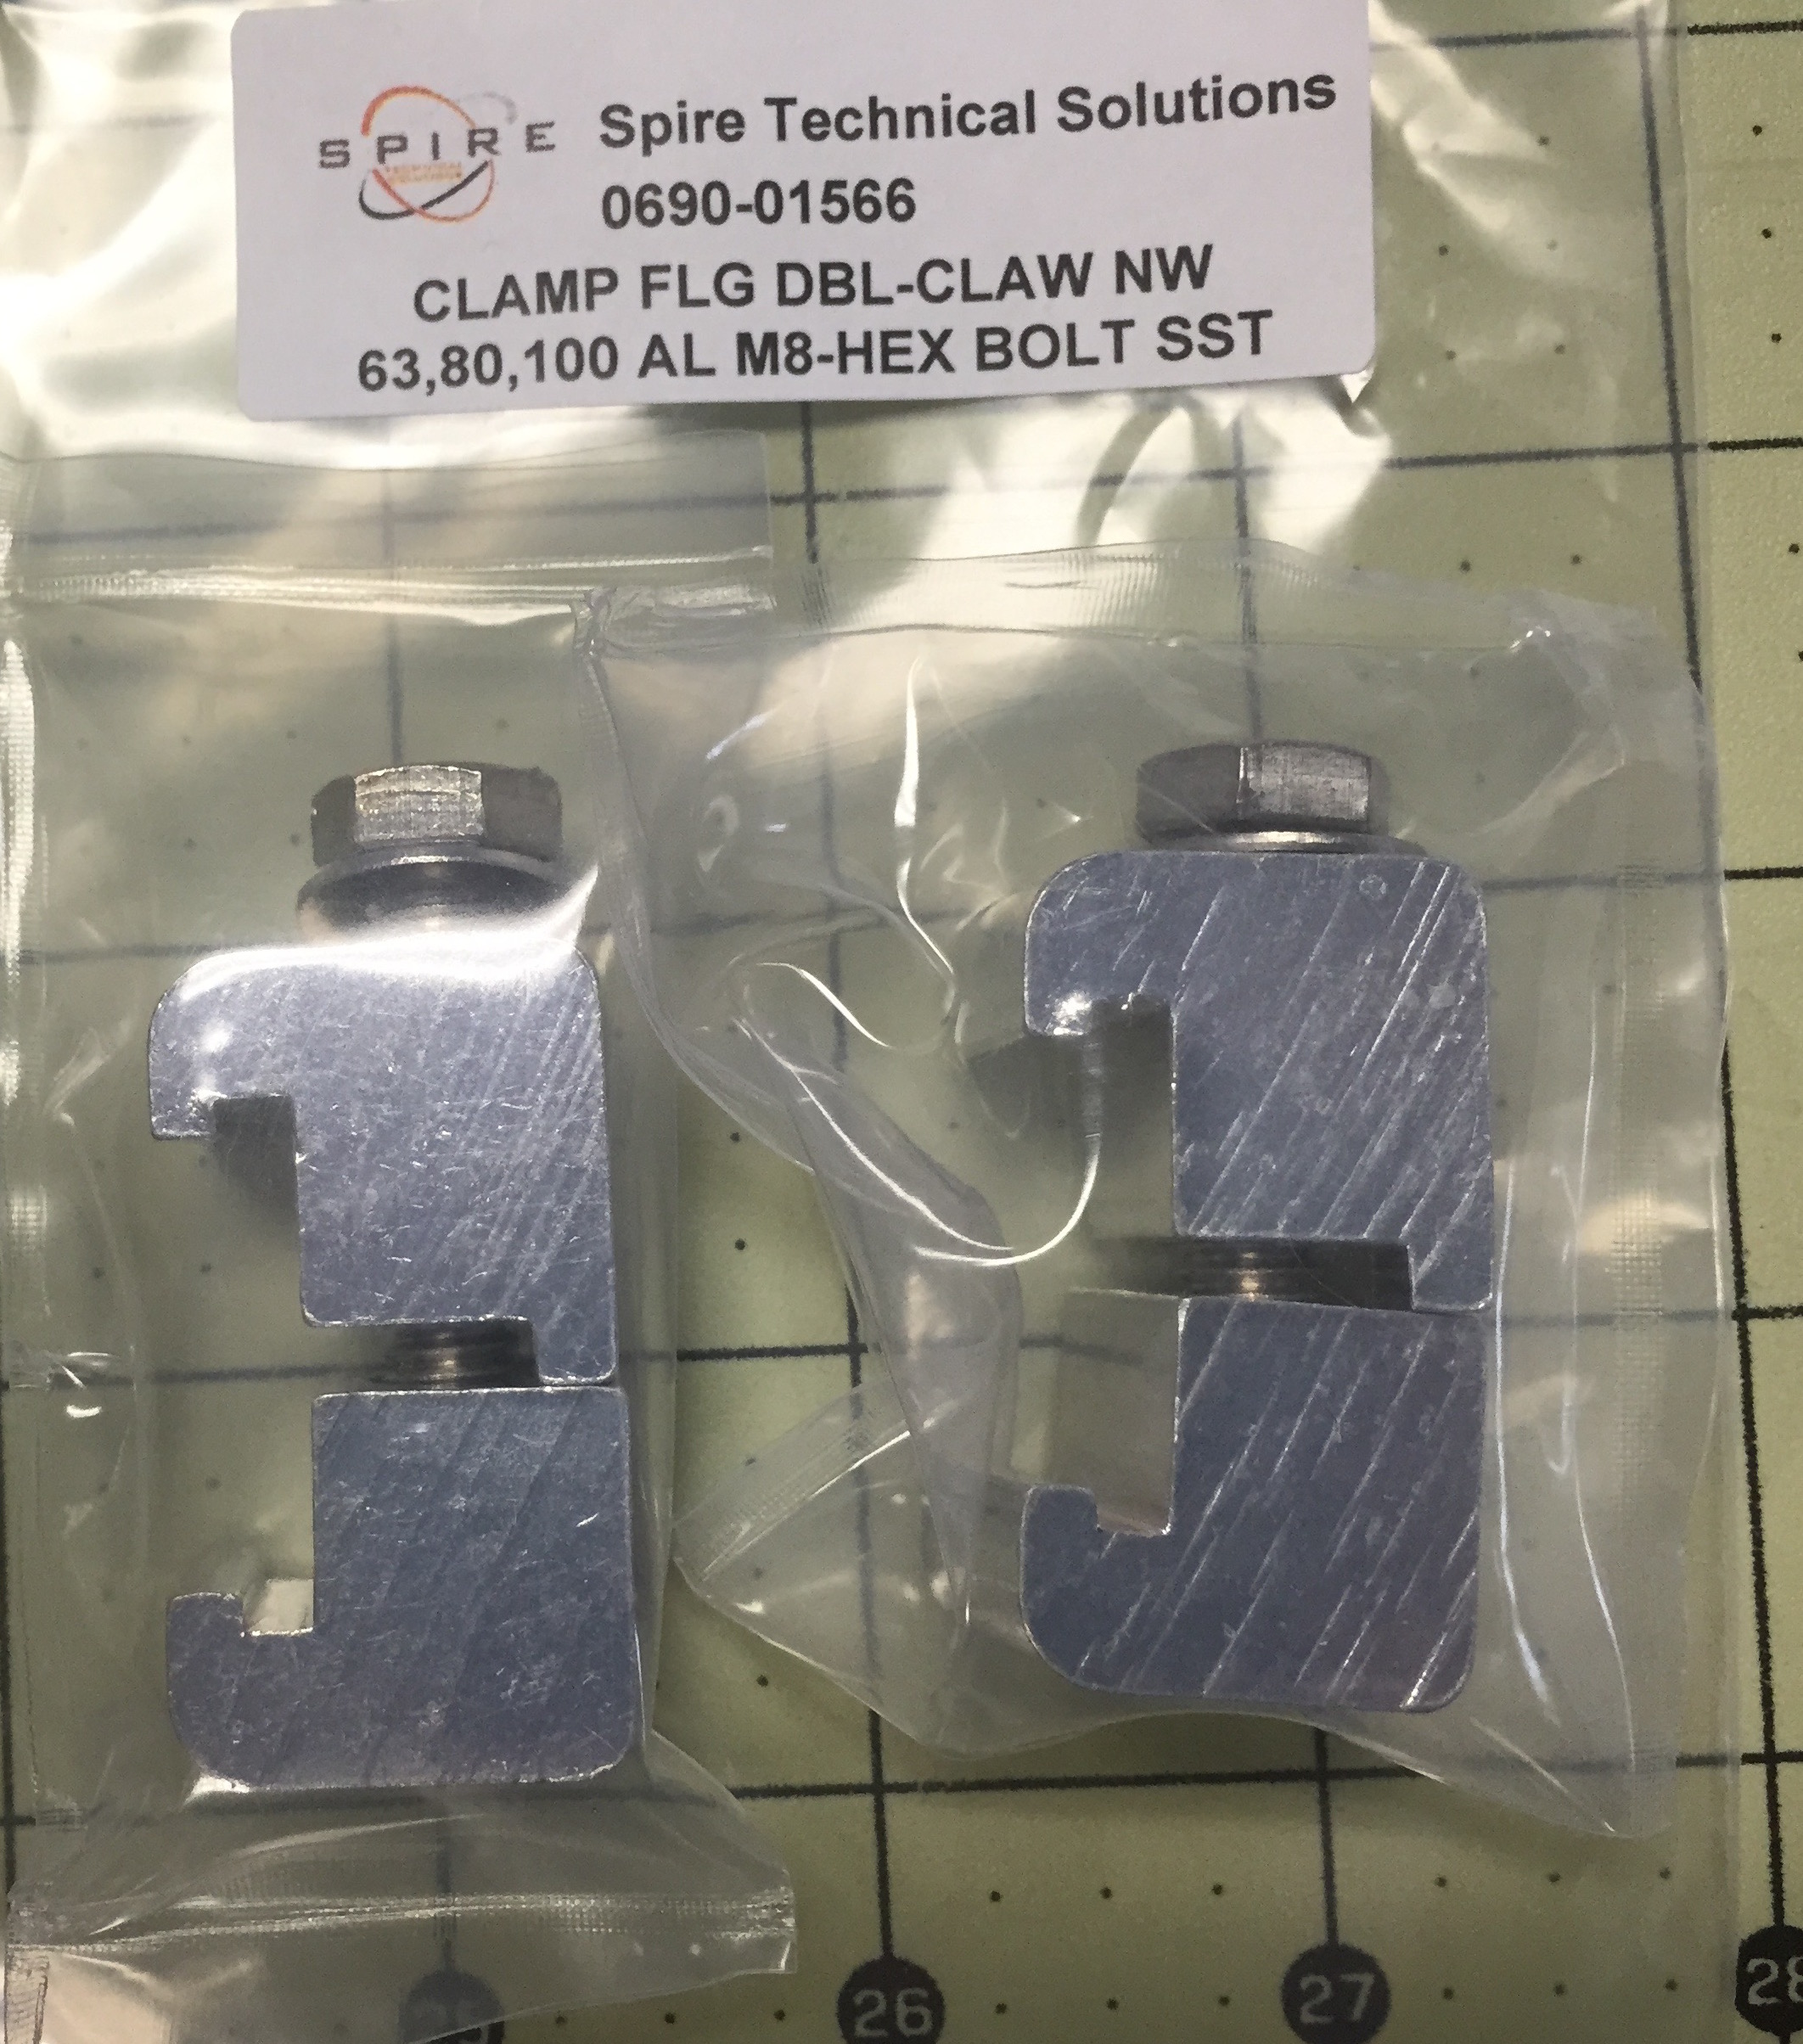 CLAMP FLG DBL-CLAW NW 63,80,100 AL M8-HEX BOLT SST